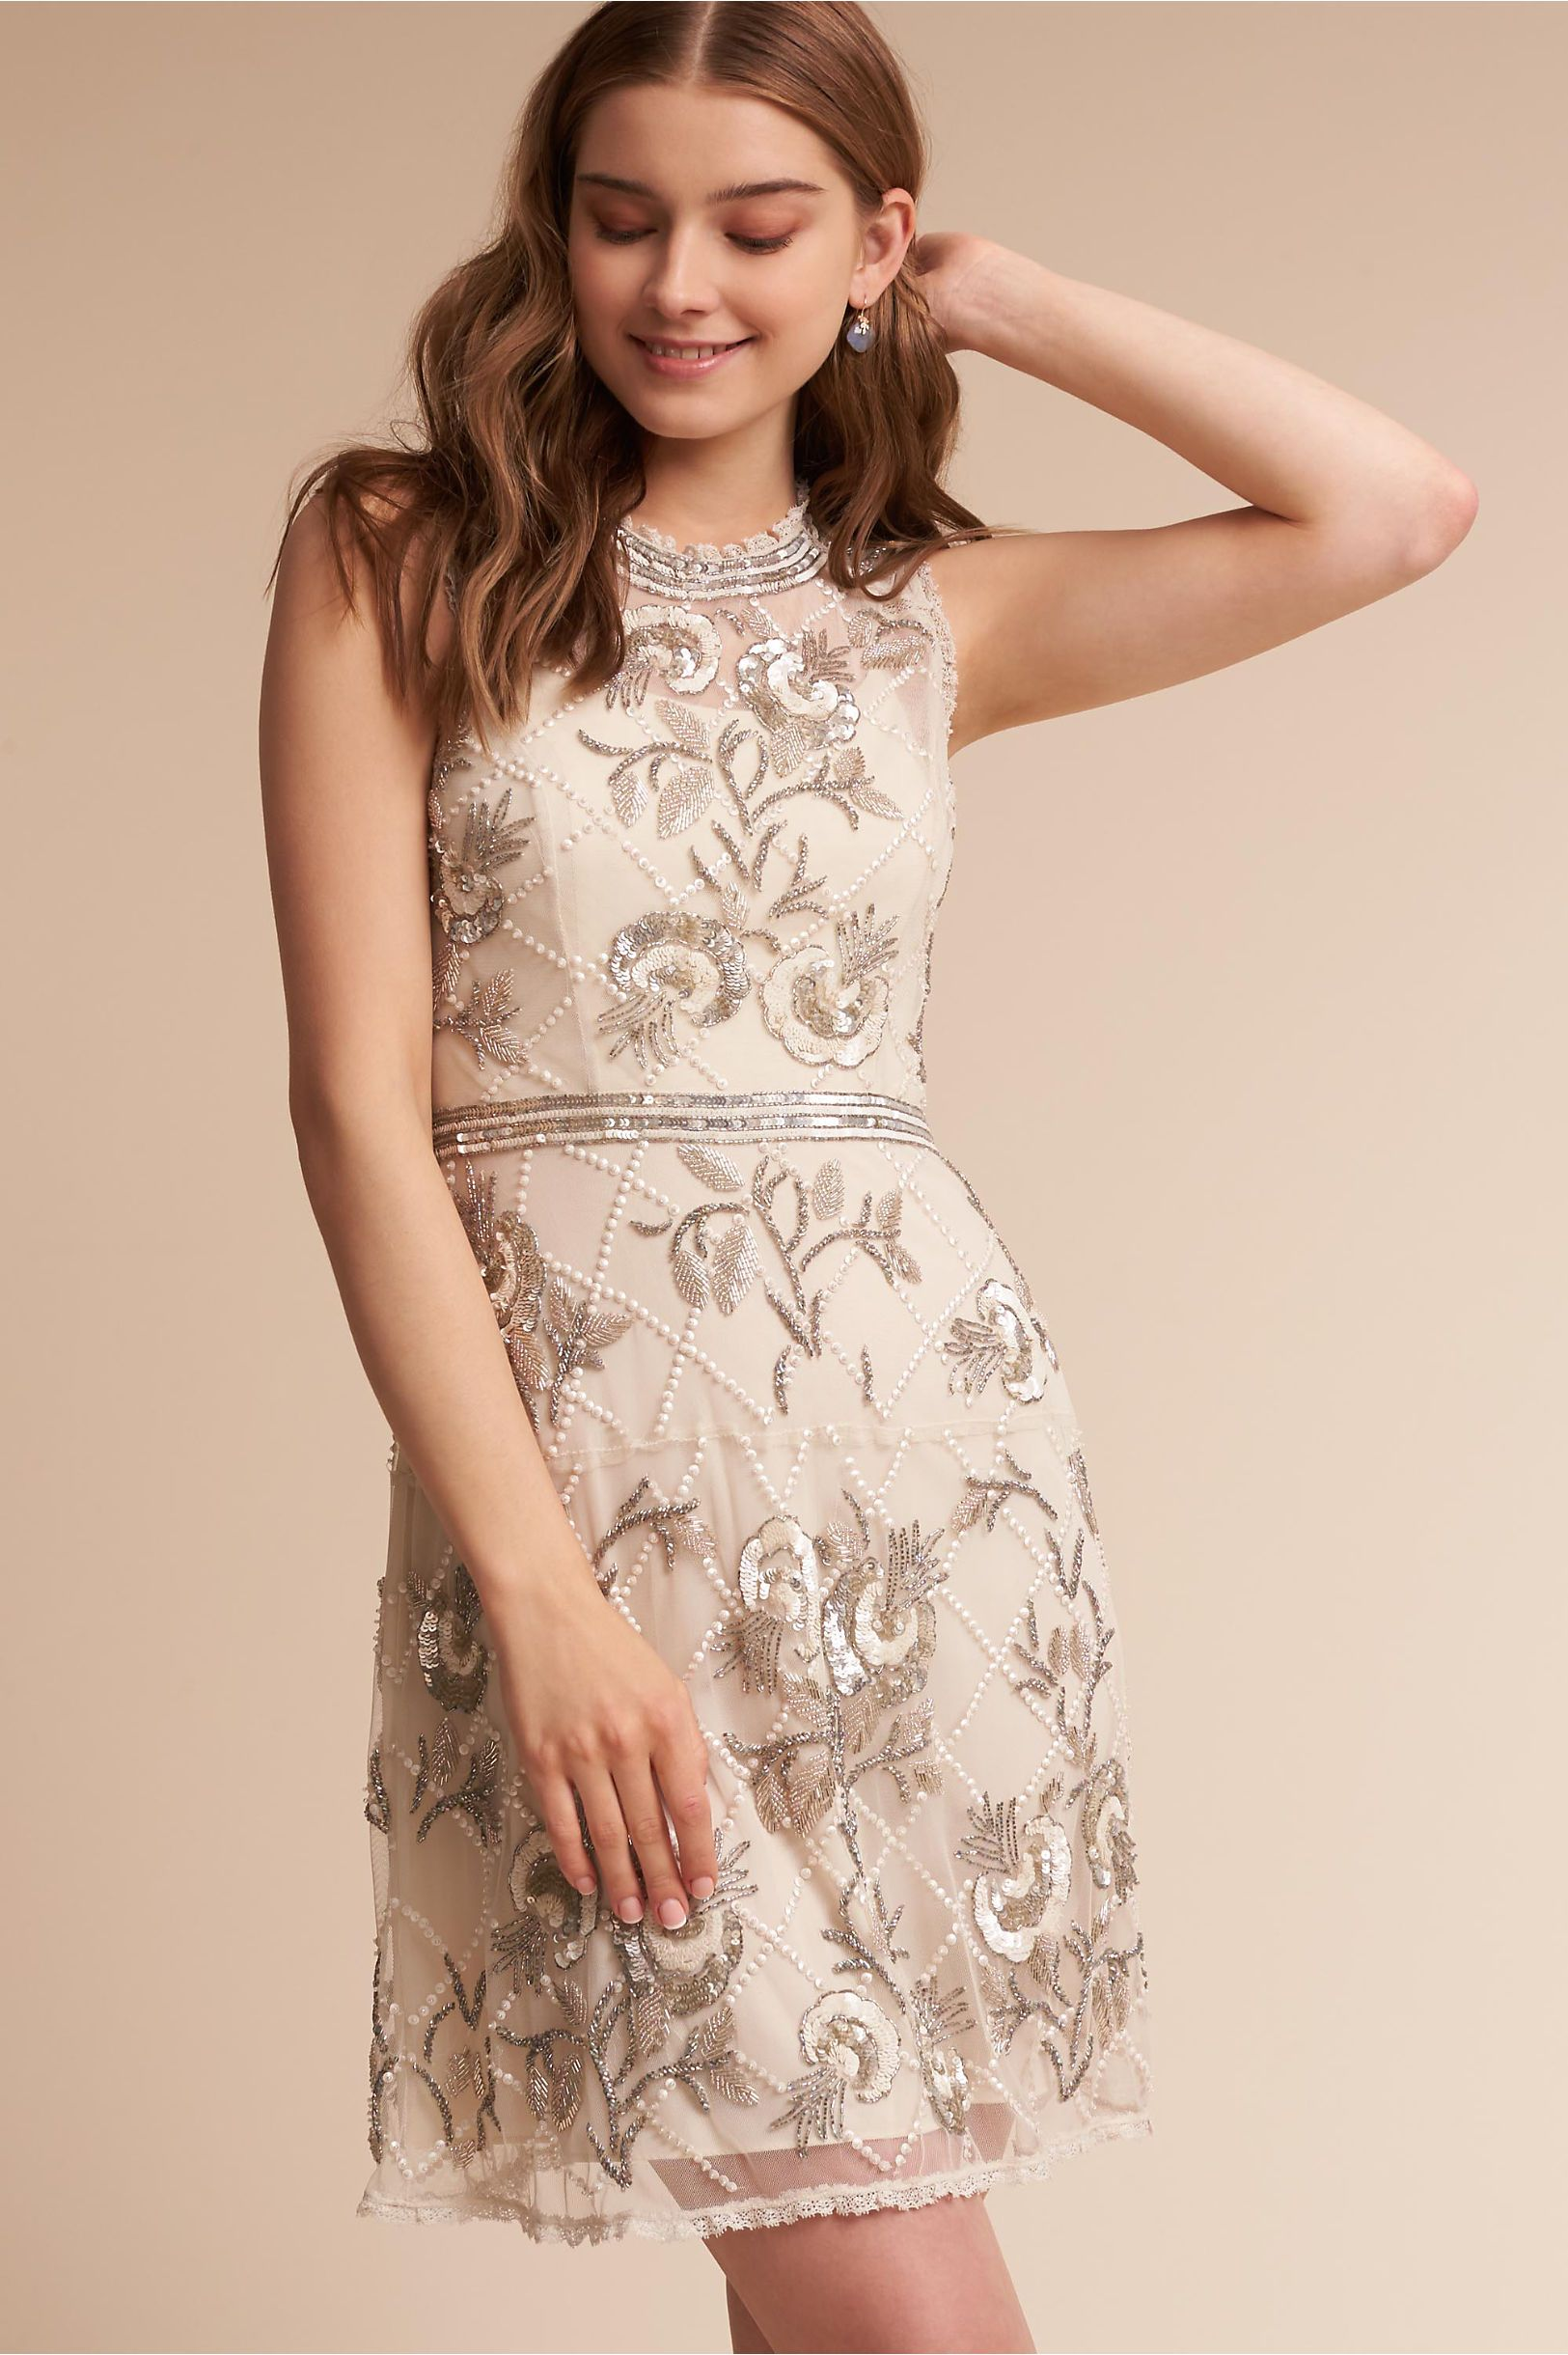 Little white wedding dress  BHLDN Mariposa Dress Champagne in Sale  BHLDN  Bridesmaids